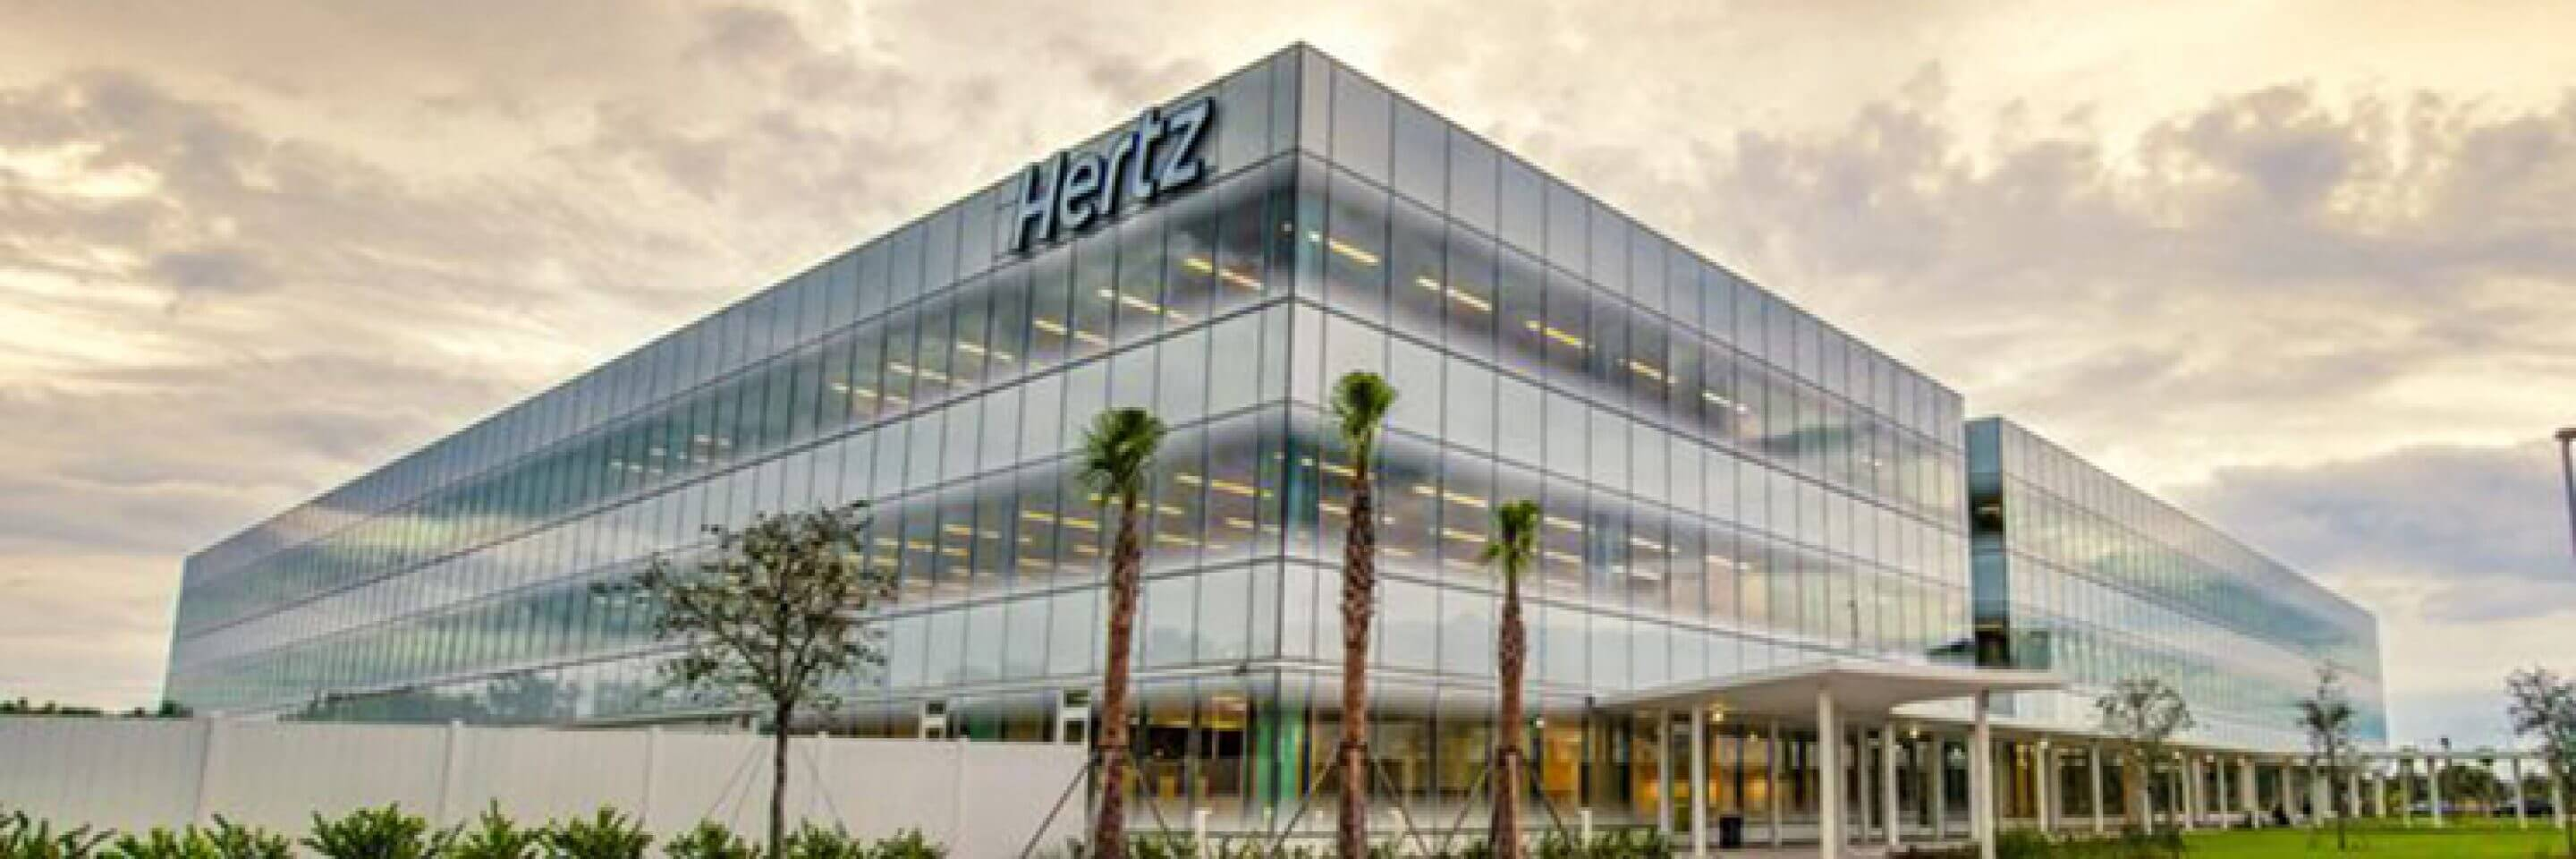 hertz corporation The hertz corporation is a global company with 10,400 corporate and franchisee locations across the globe hertz cars drive under the hertz, dollar, and thrifty brands, which operate in 150 countries across north and south america, europe, africa, asia, and australia.